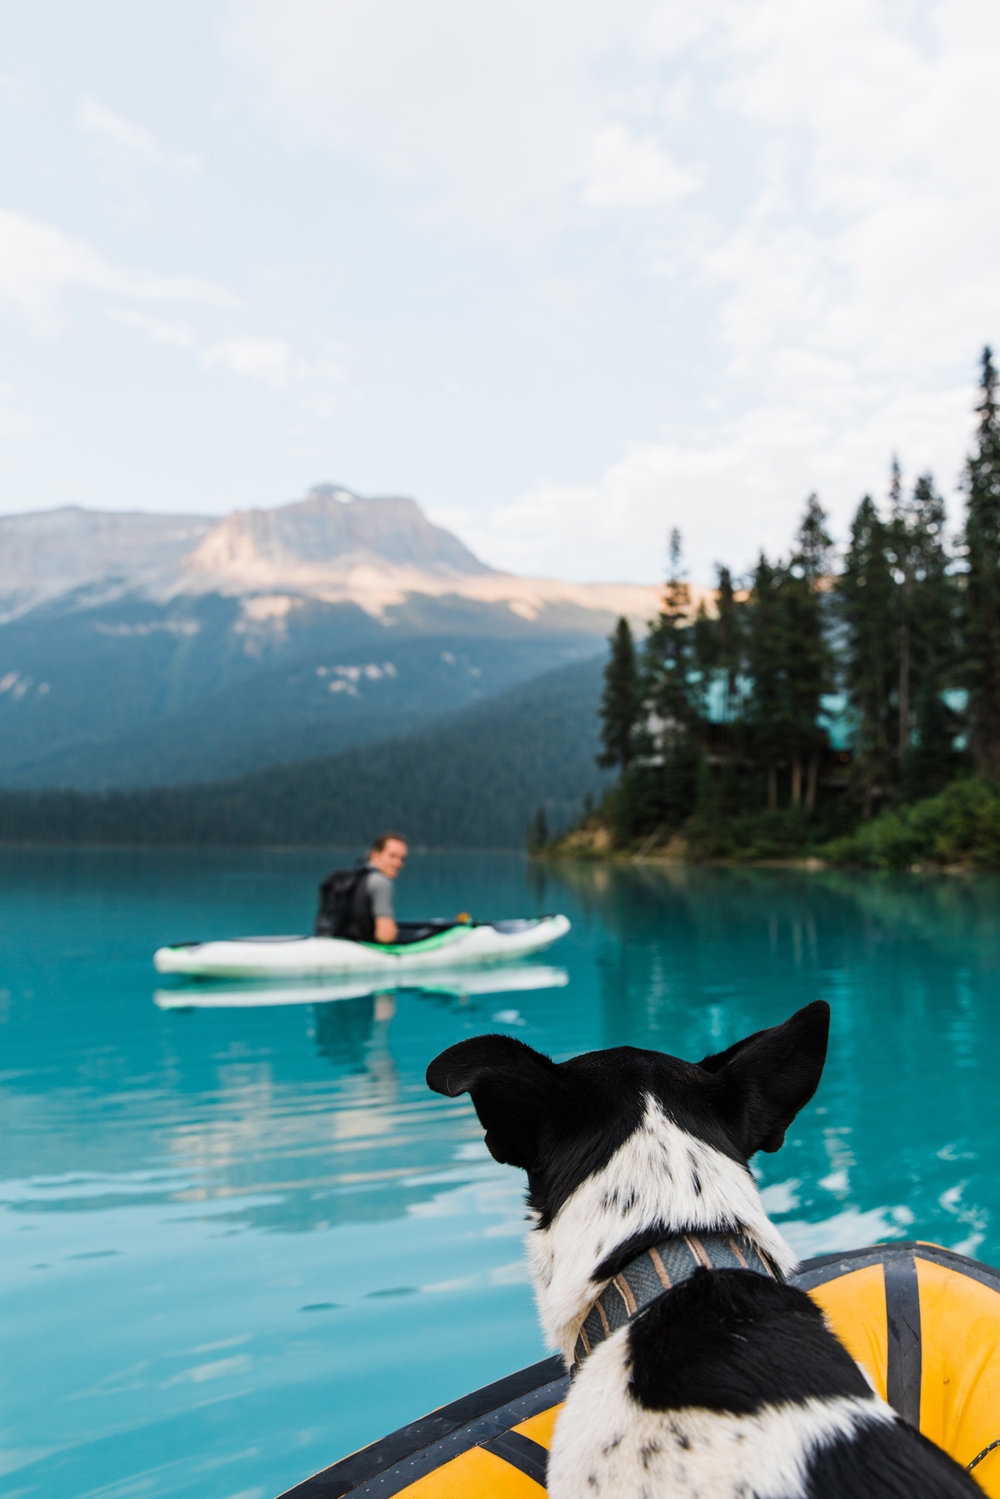 kayaking in canada | utah and california adventure elopement photographers | the hearnes adventure photography | www.thehearnes.com